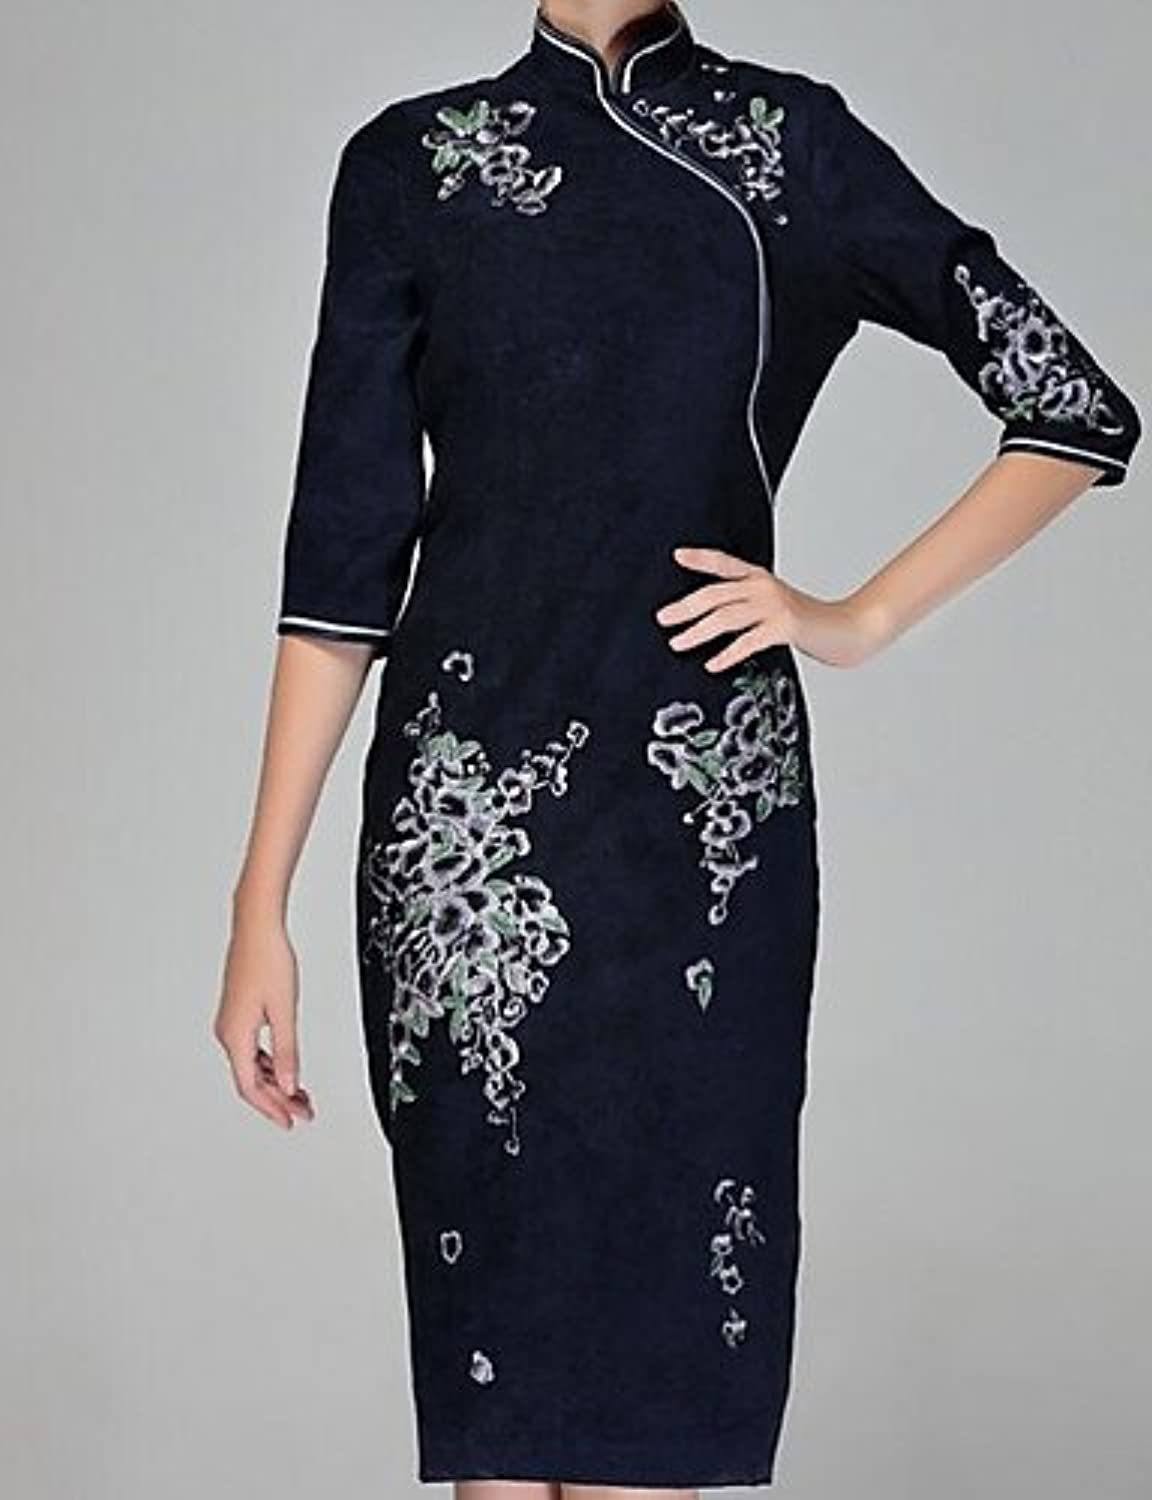 GAOLIM Women's Going KneeLength Dress, Floral Ruched Stand 3 4 Length Sleeves,Navy blueee,XL